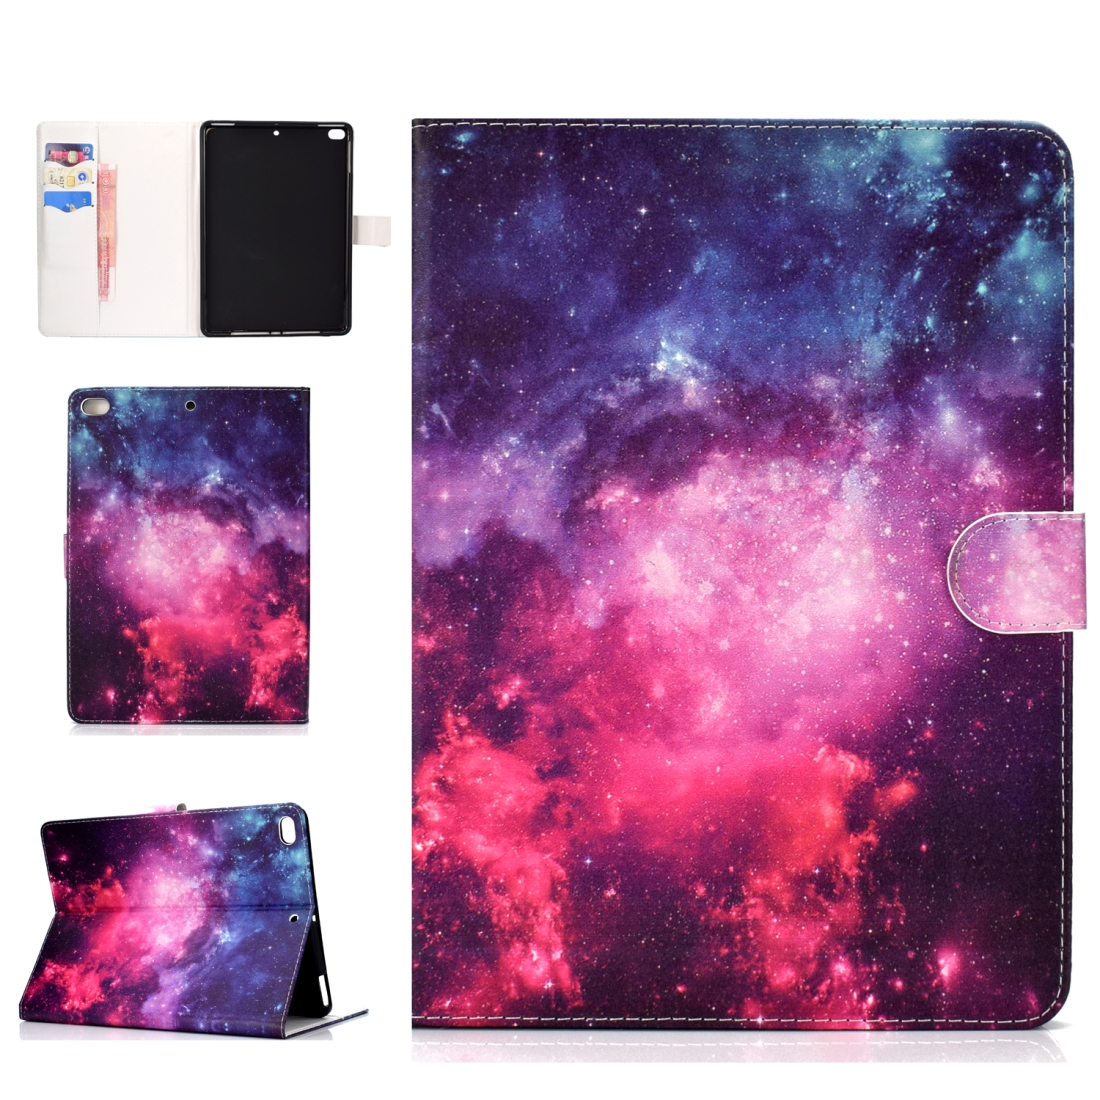 iPad 5th Generation Case Fits iPad 5,6,8, Stylish Leather Design & Auto Sleep Function (Starry sky)